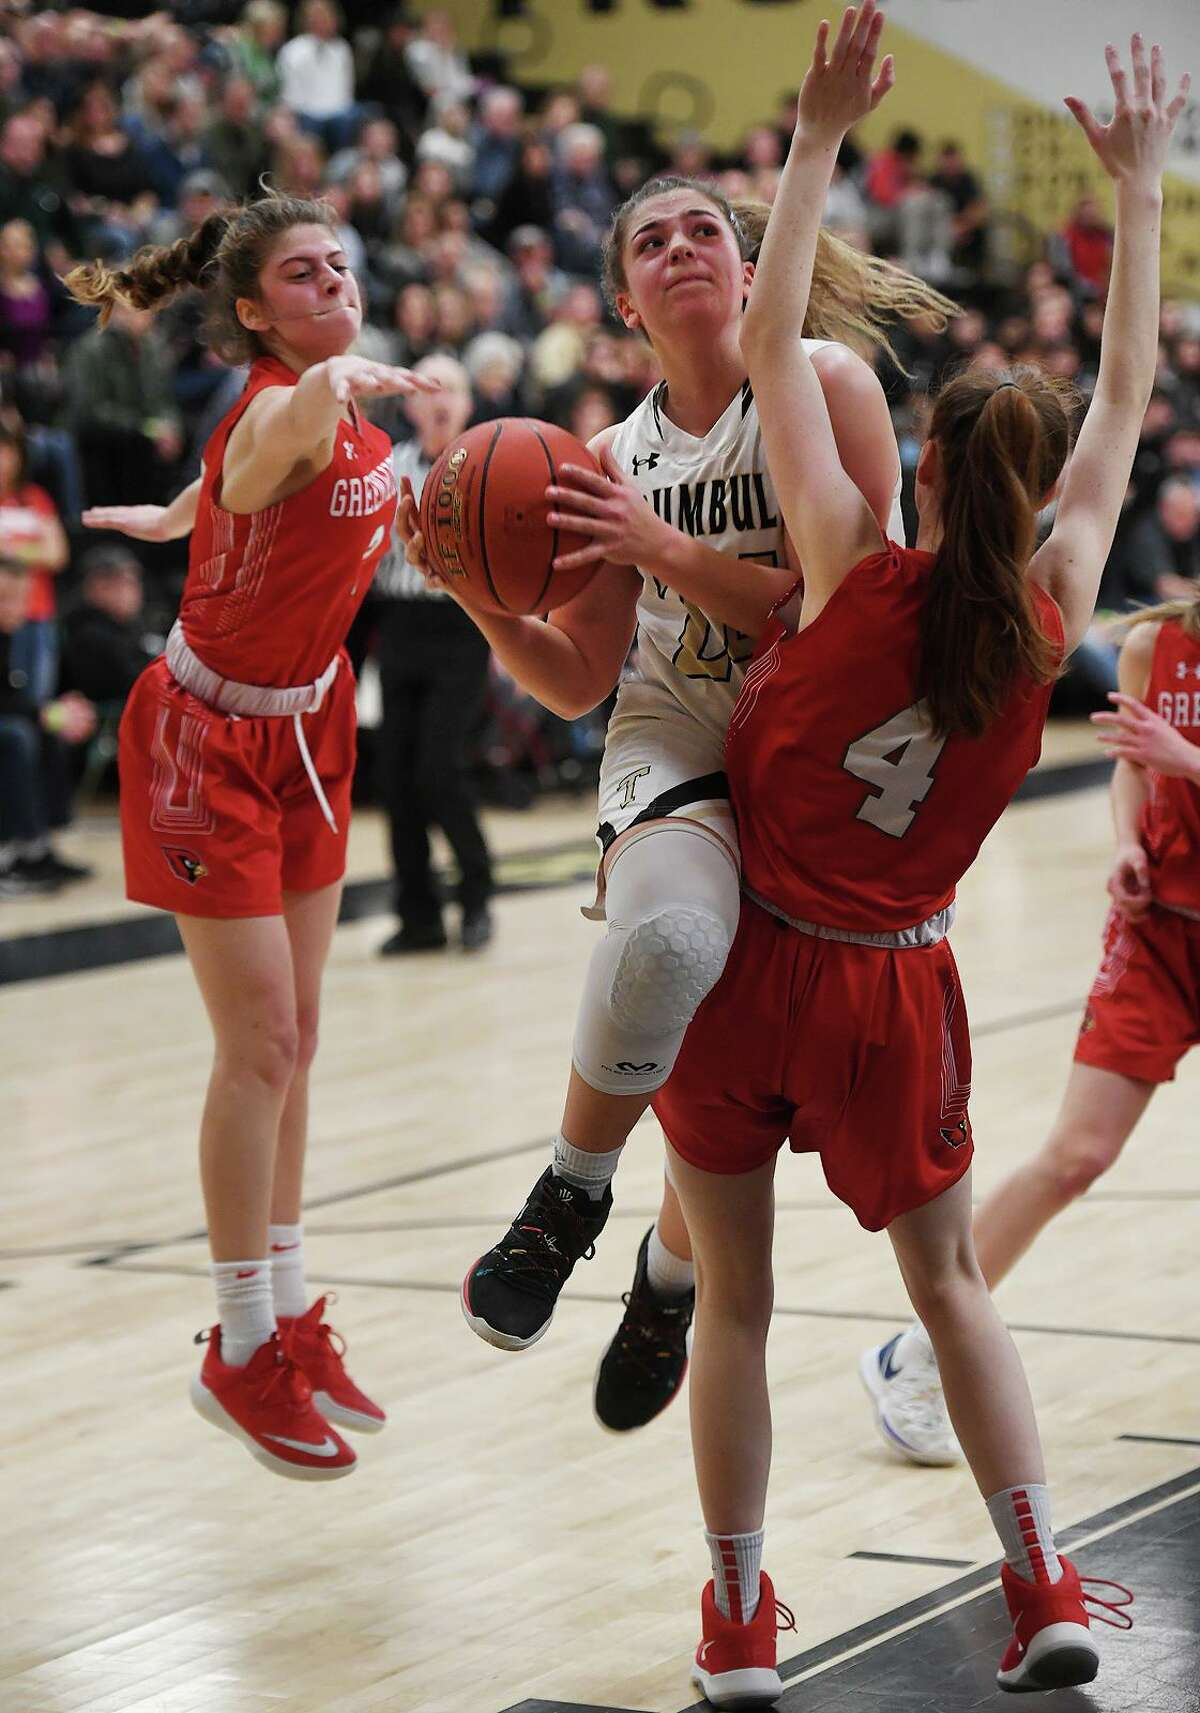 Trumbull's Cassi Barbato drives to the basket against Greenwich defender Ciara Munnelly during the first half of their CIAC Class LL girls basketball quarterfinal game at Trumbull High School in Trumbull, Conn. on Monday, March 9, 2020.